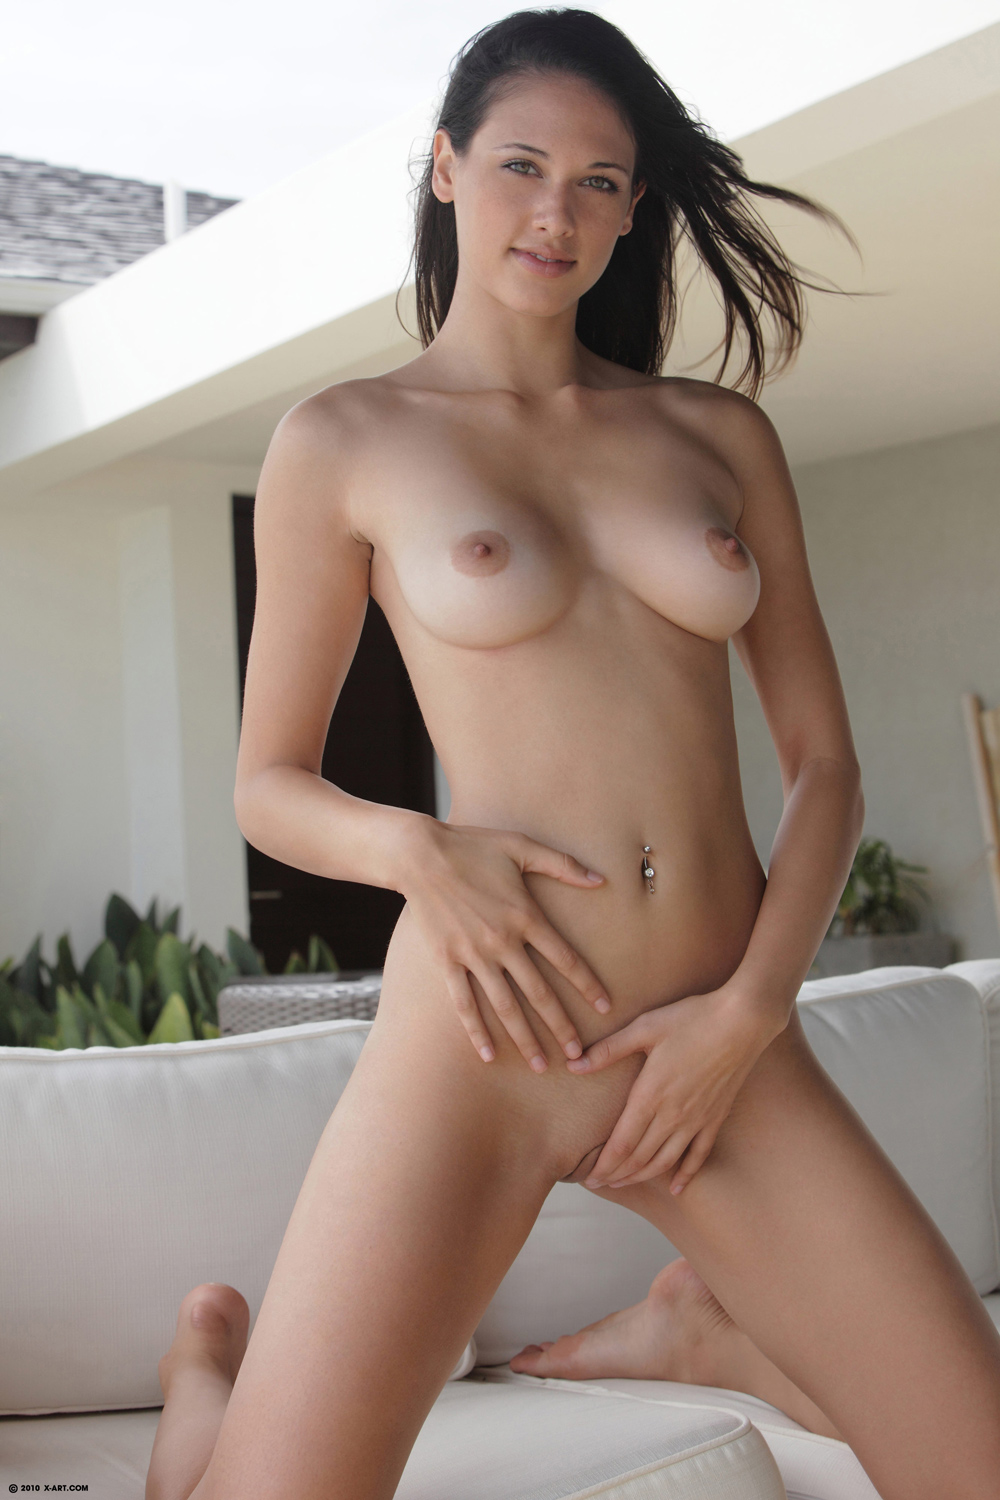 image Our favorite gf playing with her pussy without a break